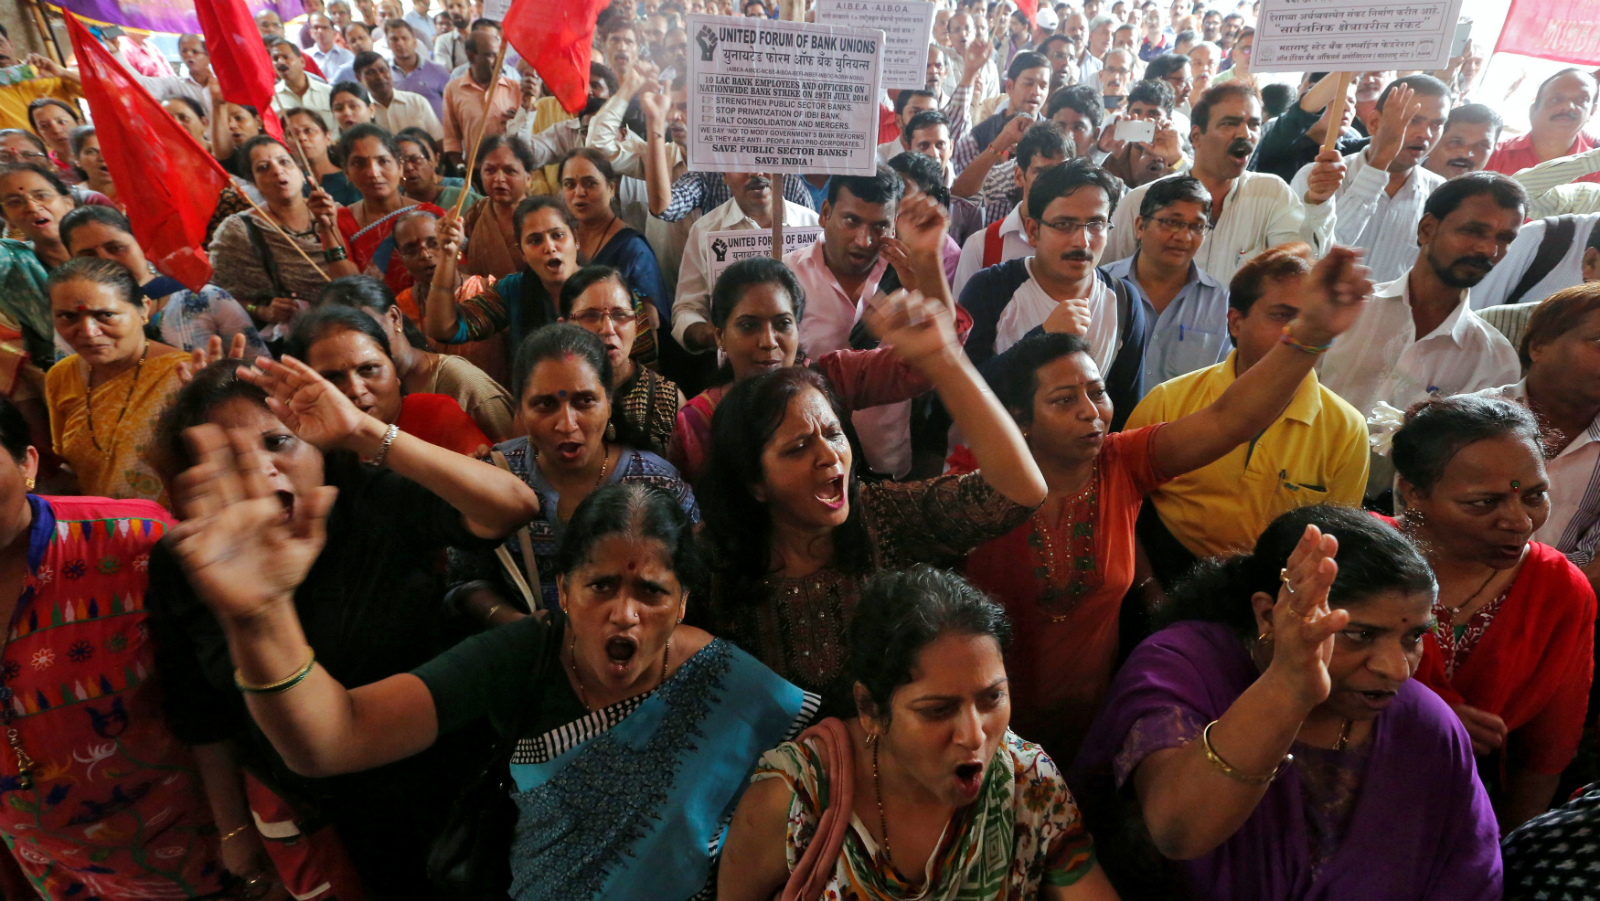 Bank employees shout slogans as they attend a strike opposing the government's proposal to merge SBI's (State Bank of India) associate banks with SBI, and against the government's proposed move to privatise IDBI Bank, in Mumbai, India, July 29, 2016.